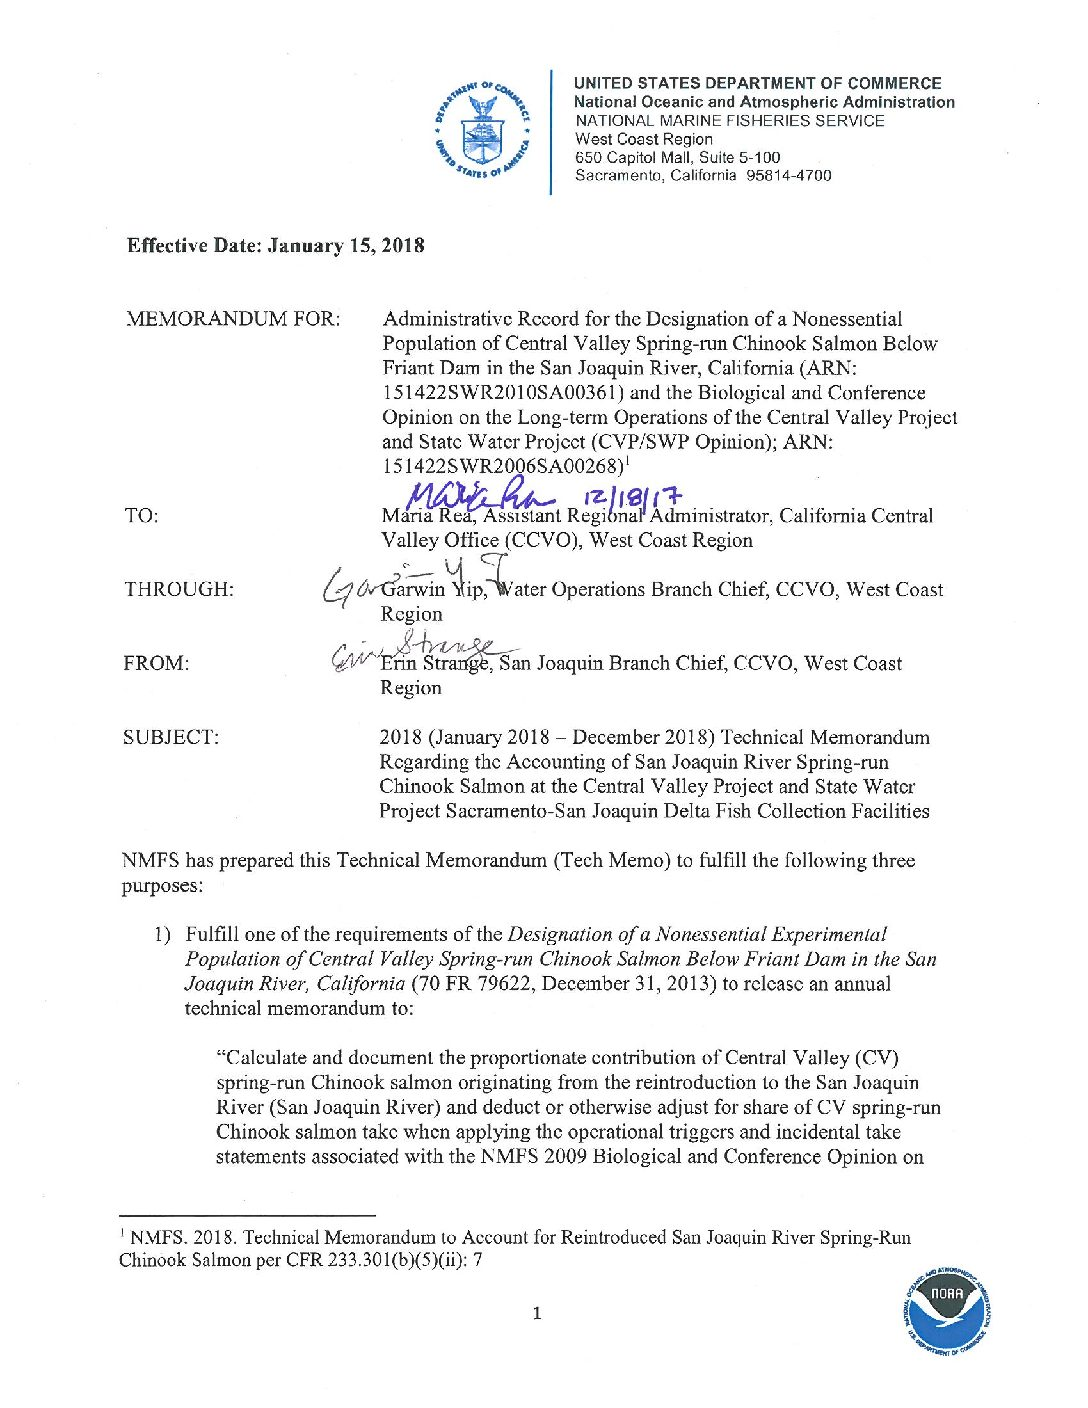 2018 Technical Memorandum Regarding the Accounting of San Joaquin River Spring-run Chinook Salmon at the Central Valley Project and State Water Project Sacramento-San Joaquin Delta Fish Collection Facilities